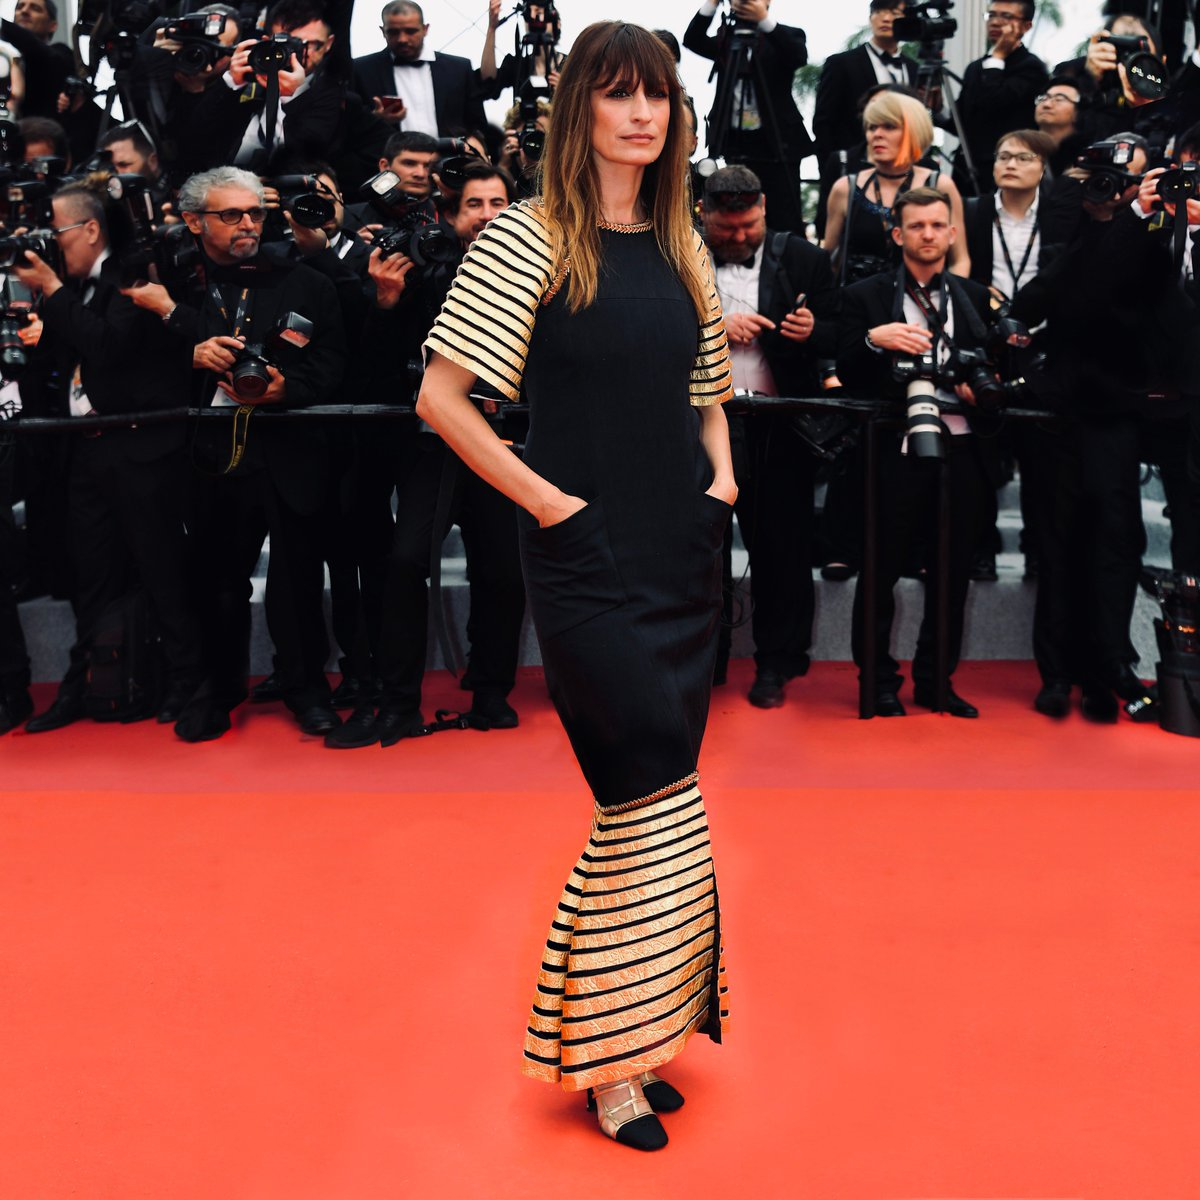 #Cannes2019 opening night — House ambassador Caroline de Maigret climbed the red carpet for the launch of the 72nd Cannes Film Festival wearing a dress from the Paris - New York 2018/19 #CHANELMetiersdArt collection. #CHANELinCannes #CHANELinCinema pic.twitter.com/fM8cEyVlK6